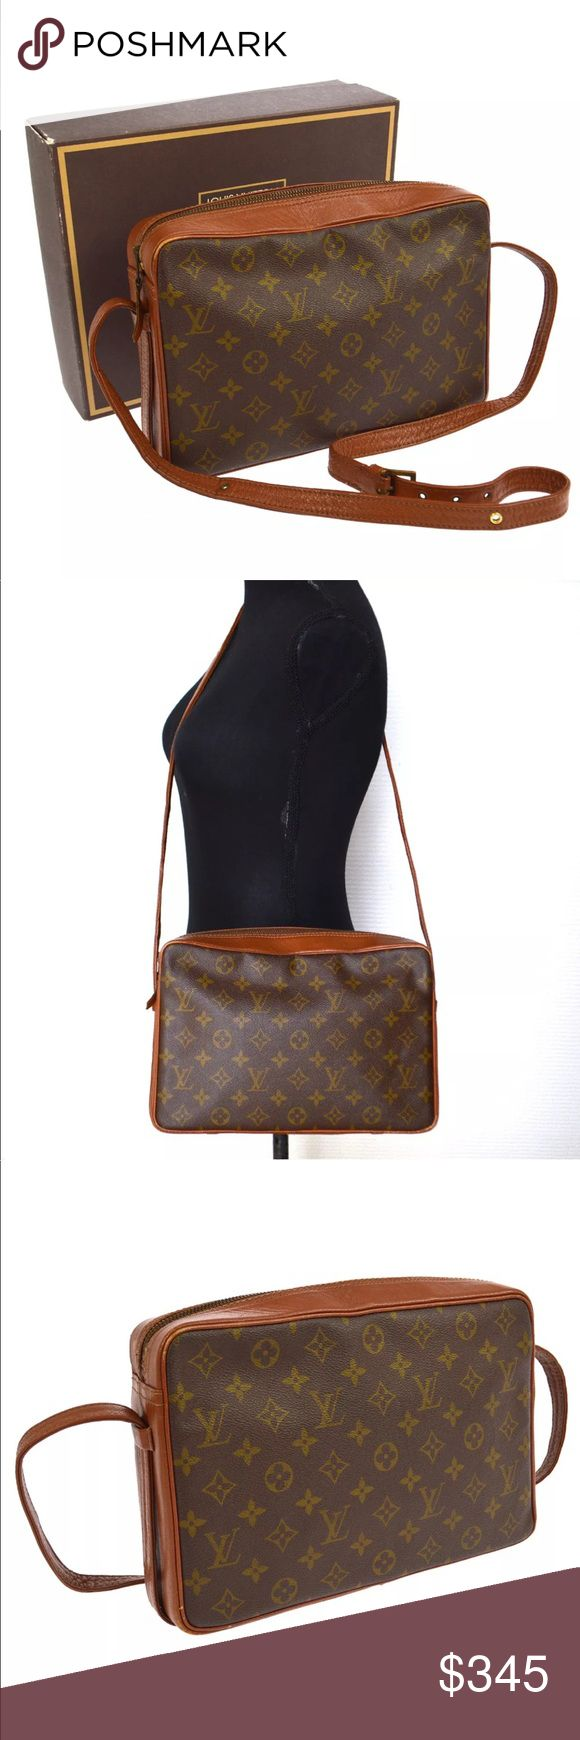 """Authentic Louis Vuitton Sac 30 Messenger Vintage Sac by Louis Vuitton from 1970s. Stains and scuffs, hardware tarnished, leather aging. 11.9"""" by 7.8"""". Louis Vuitton Bags Crossbody Bags"""